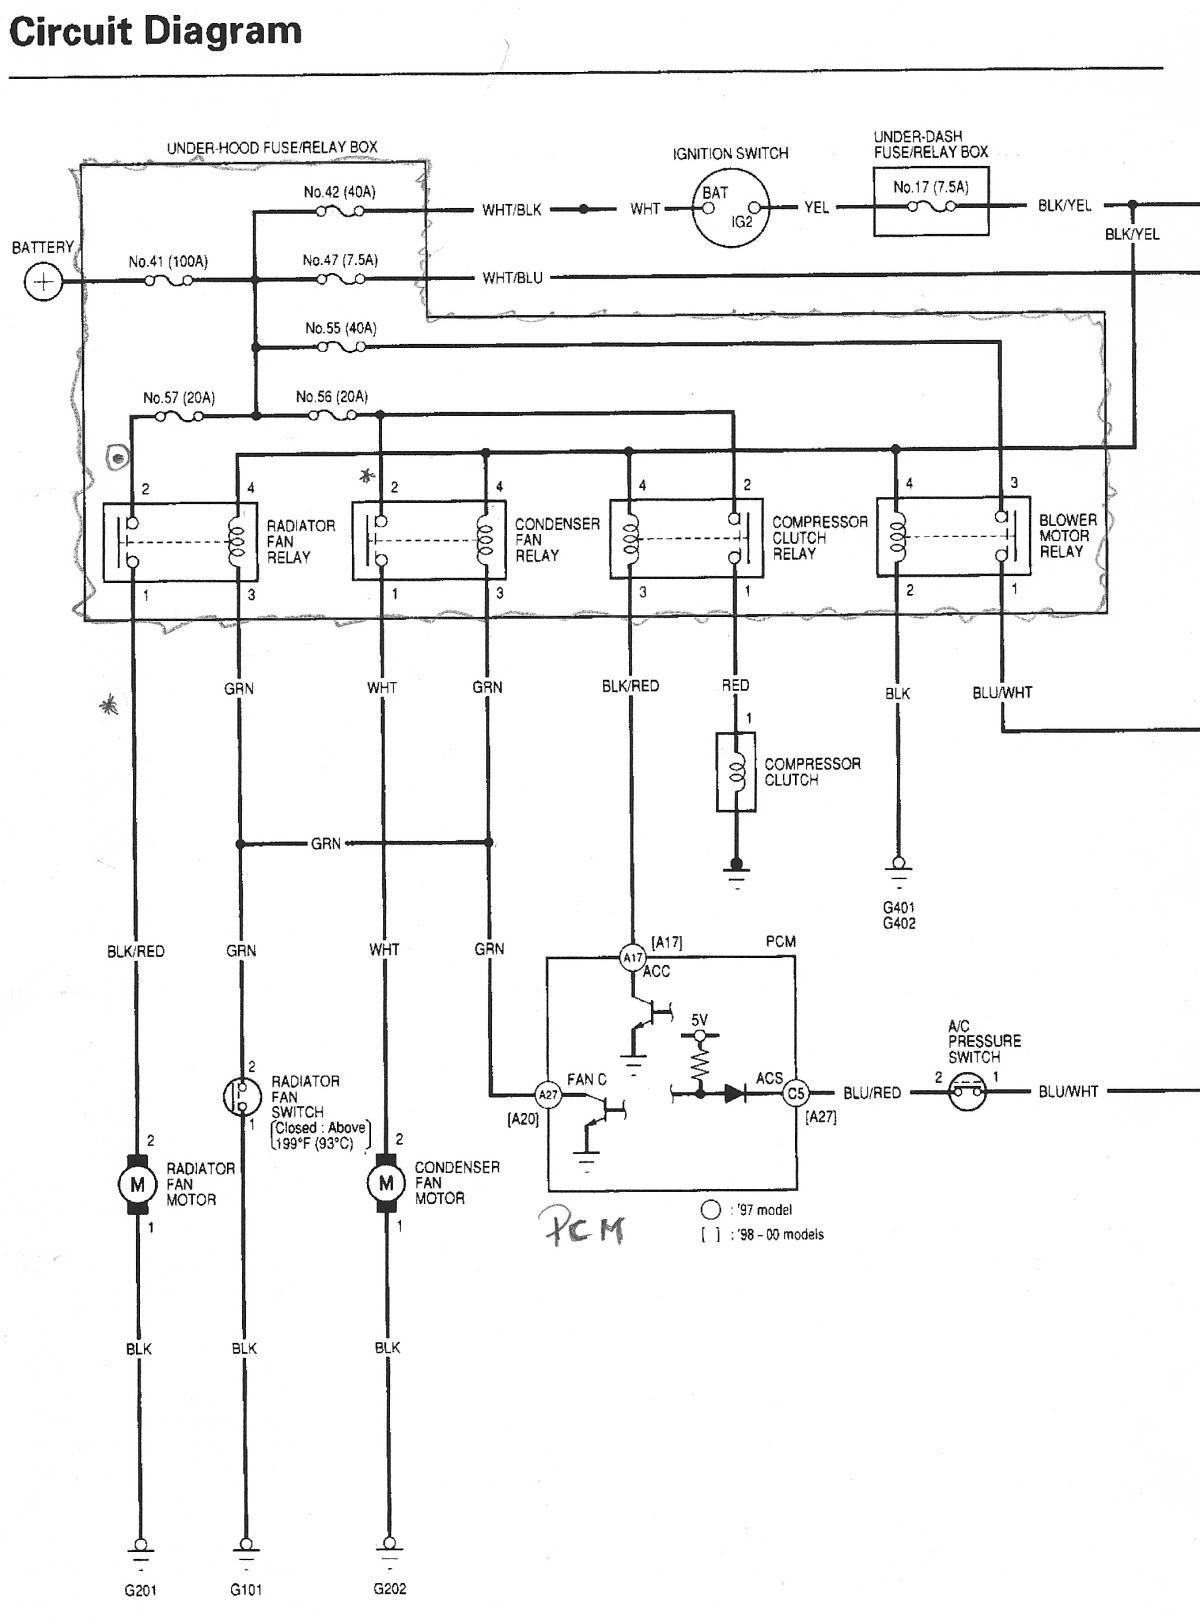 2000 Accord Radio Wiring Diagram - K5 Blazer Wiring Harness for Wiring  Diagram SchematicsWiring Diagram Schematics